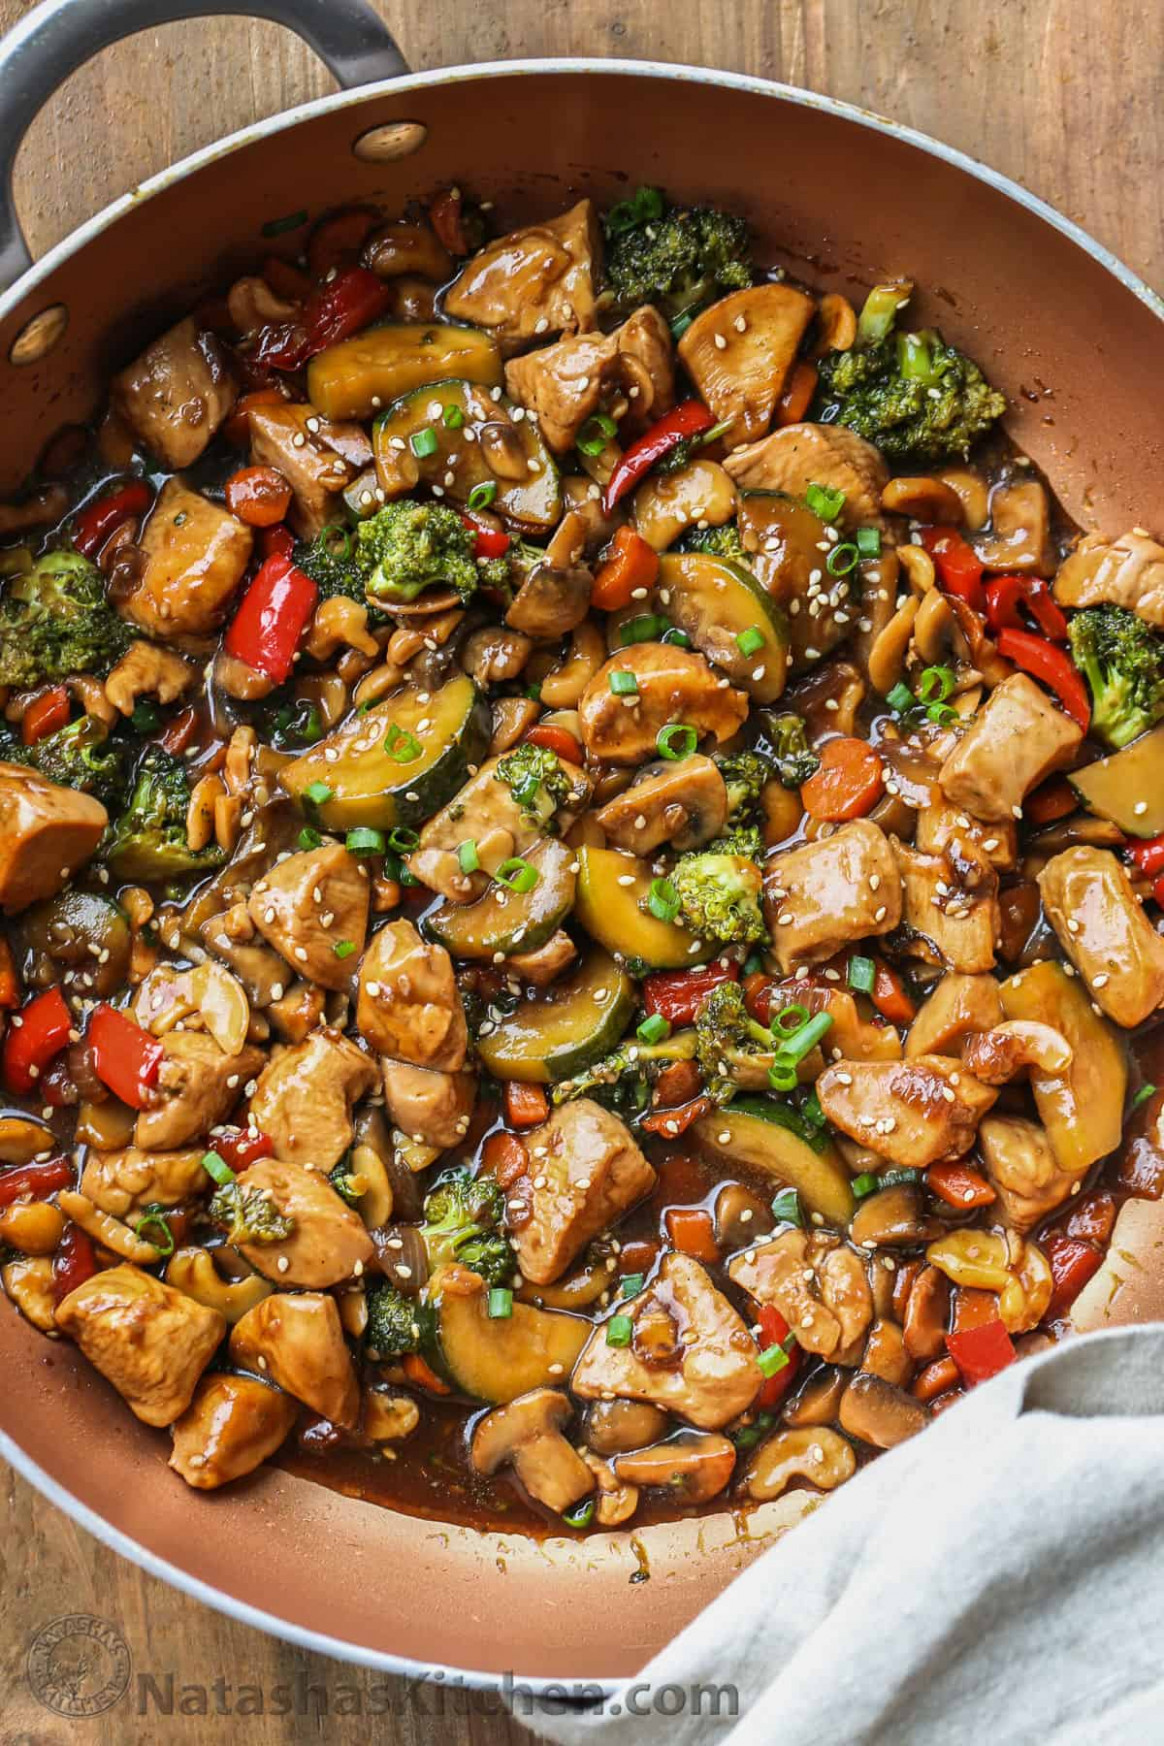 Chicken Stir Fry Recipe - stir fry recipes chicken